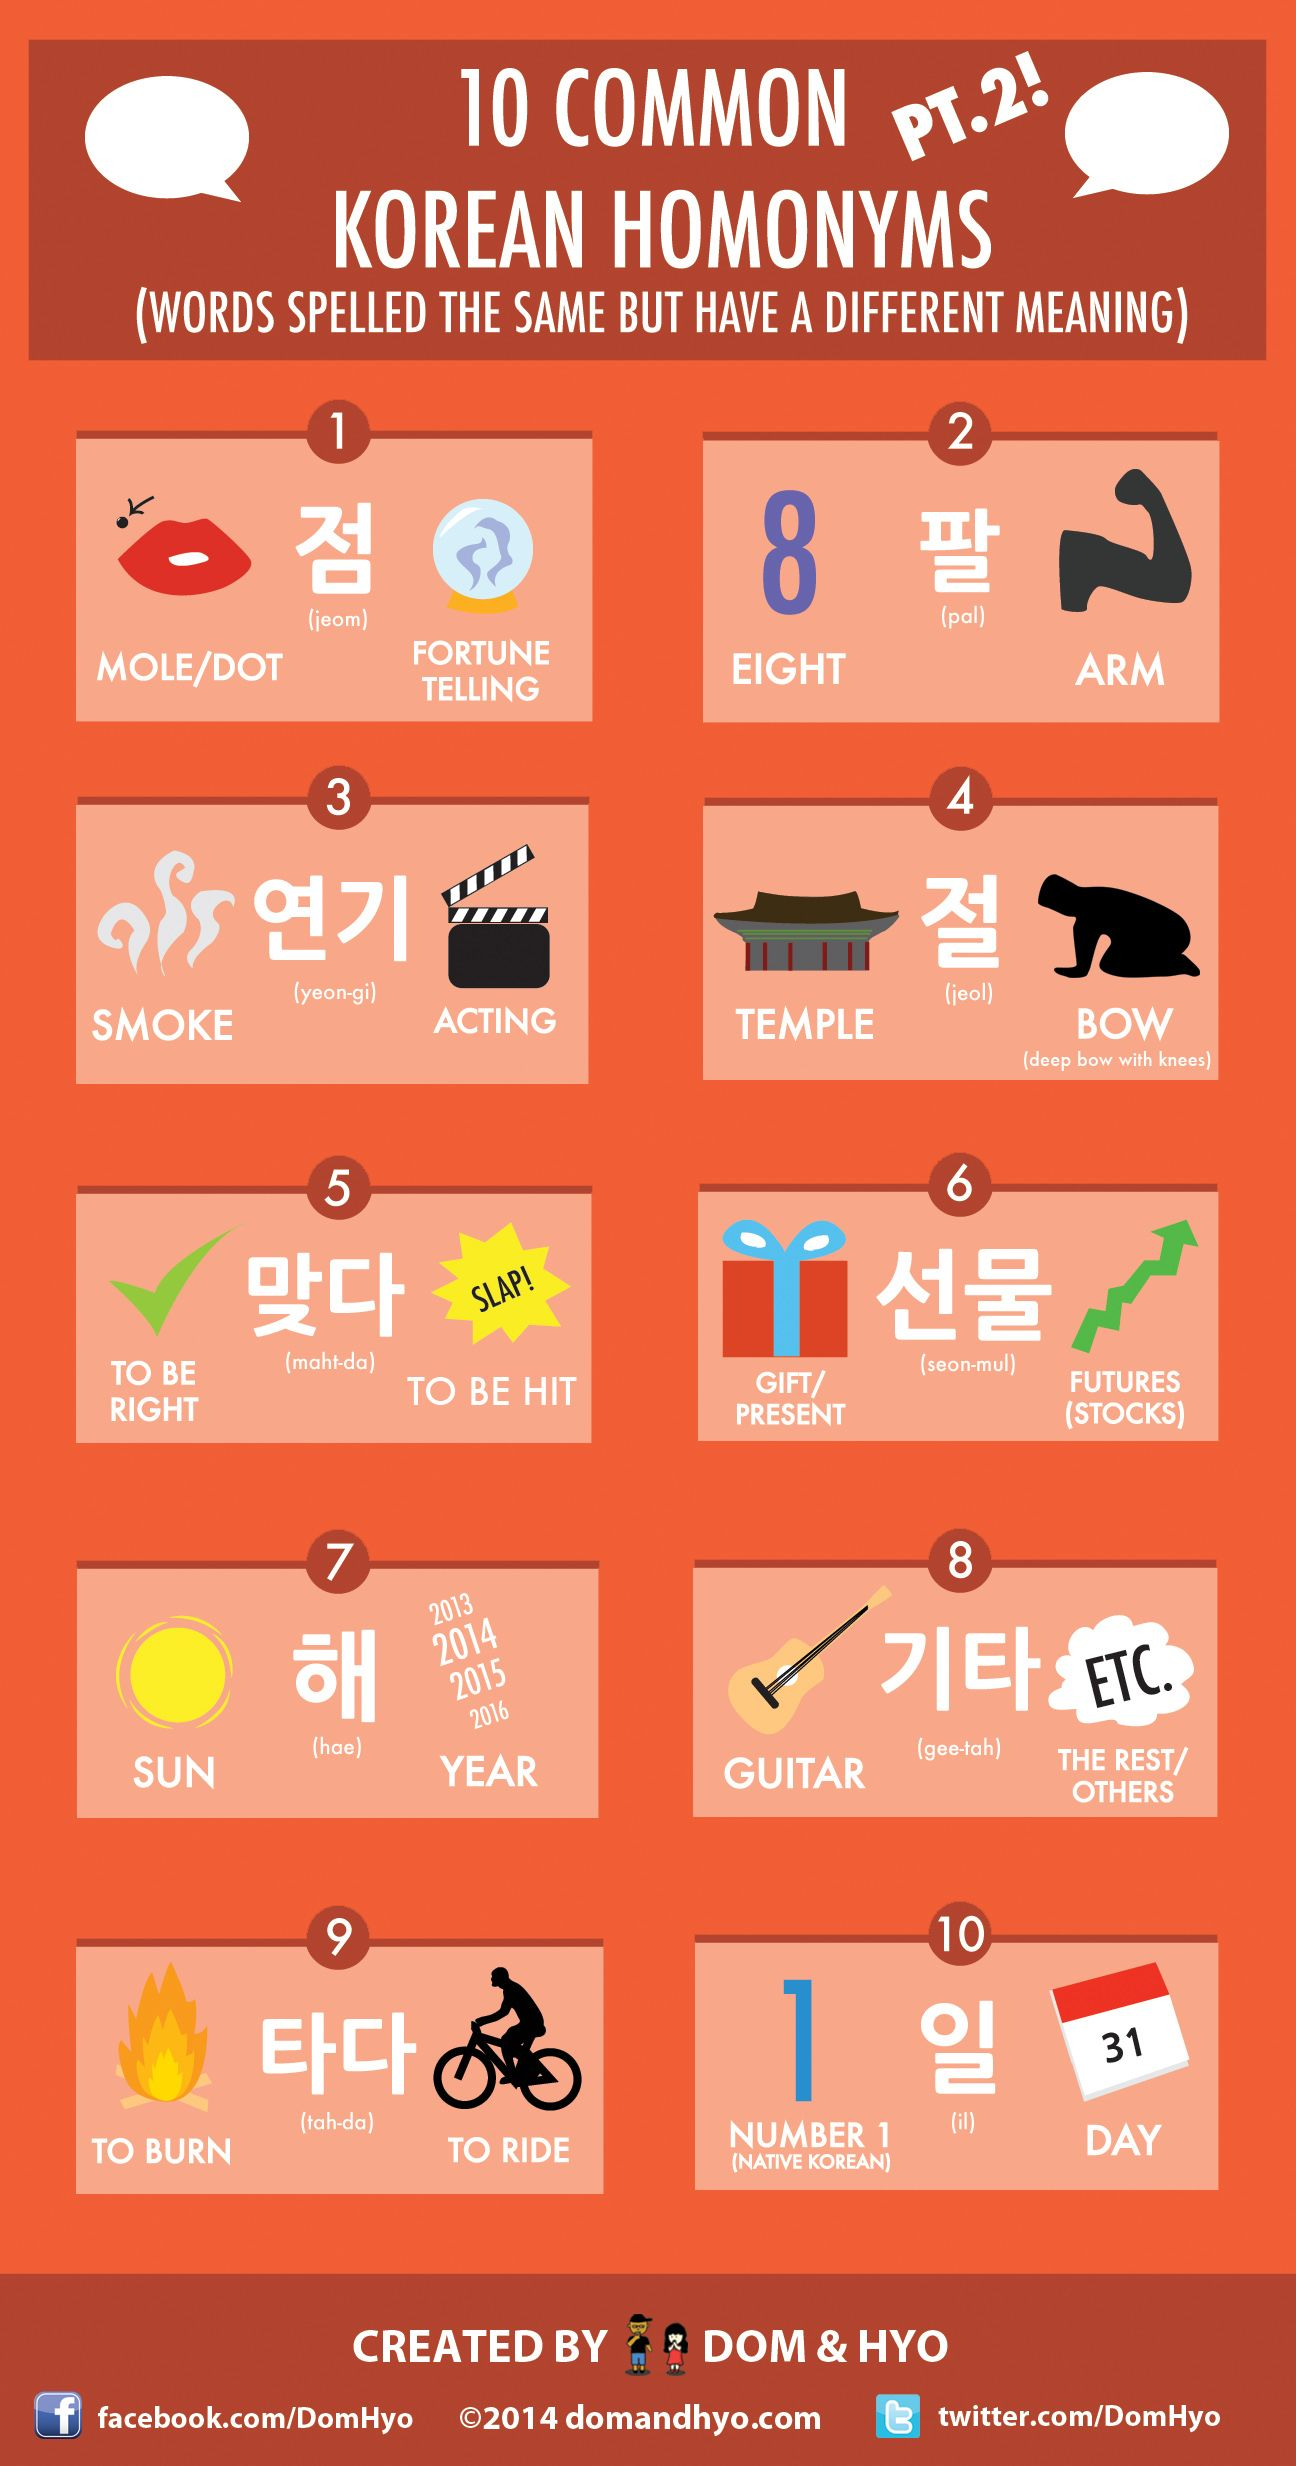 Common Korean Homonyms Part 2